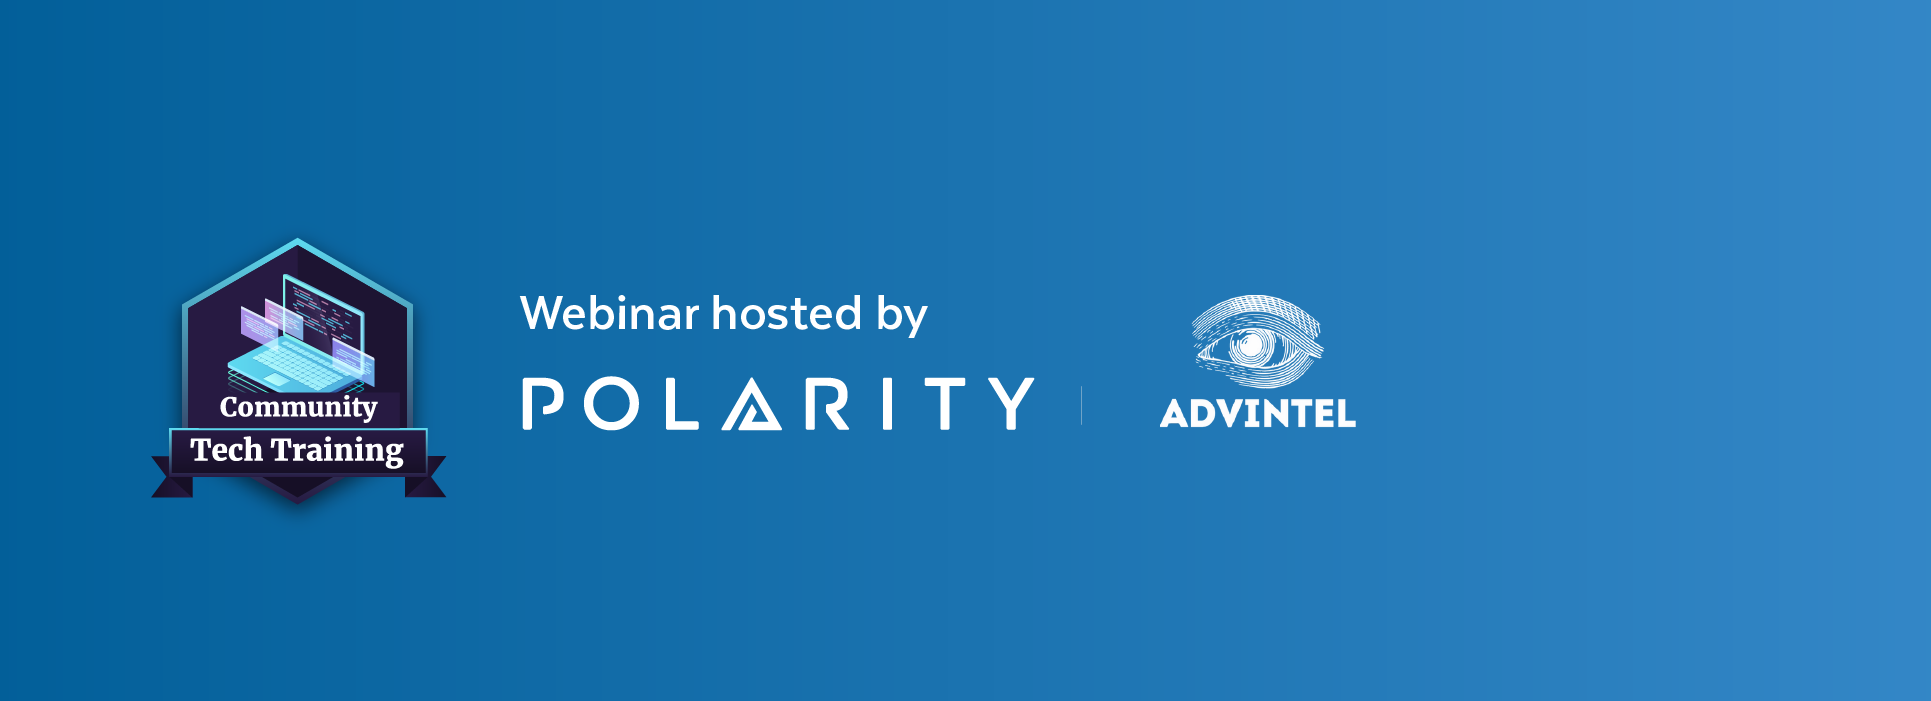 3 Ways to Triage Threats Faster with Polarity and AdvIntelcover image